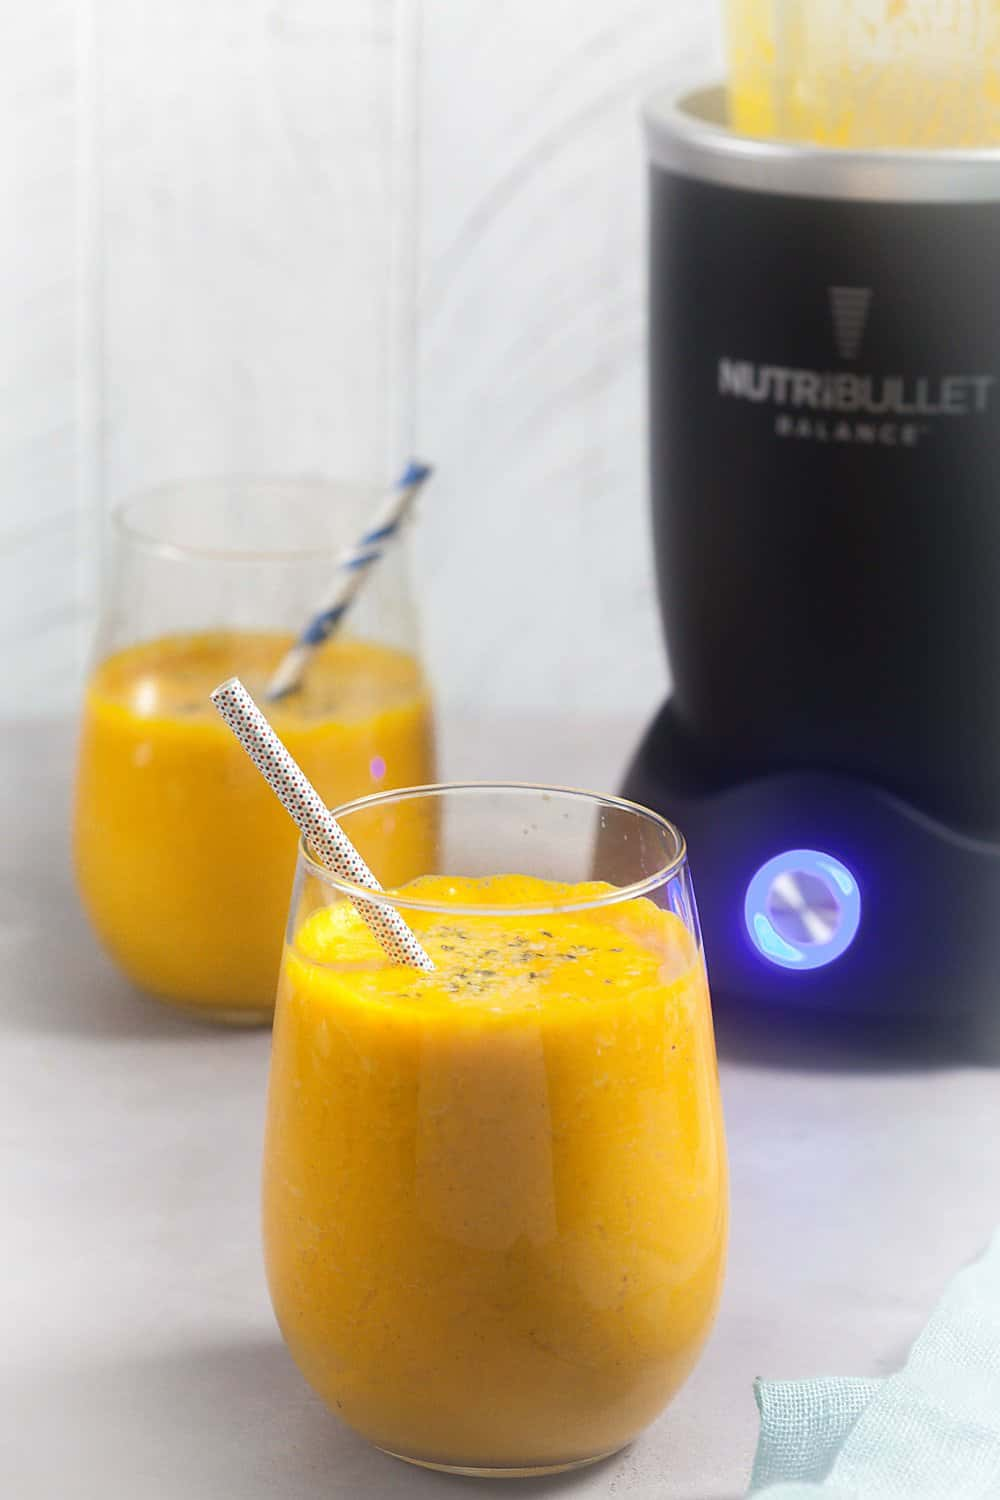 pineapple Ginger Immunity Smoothie with Nutribullet Balance